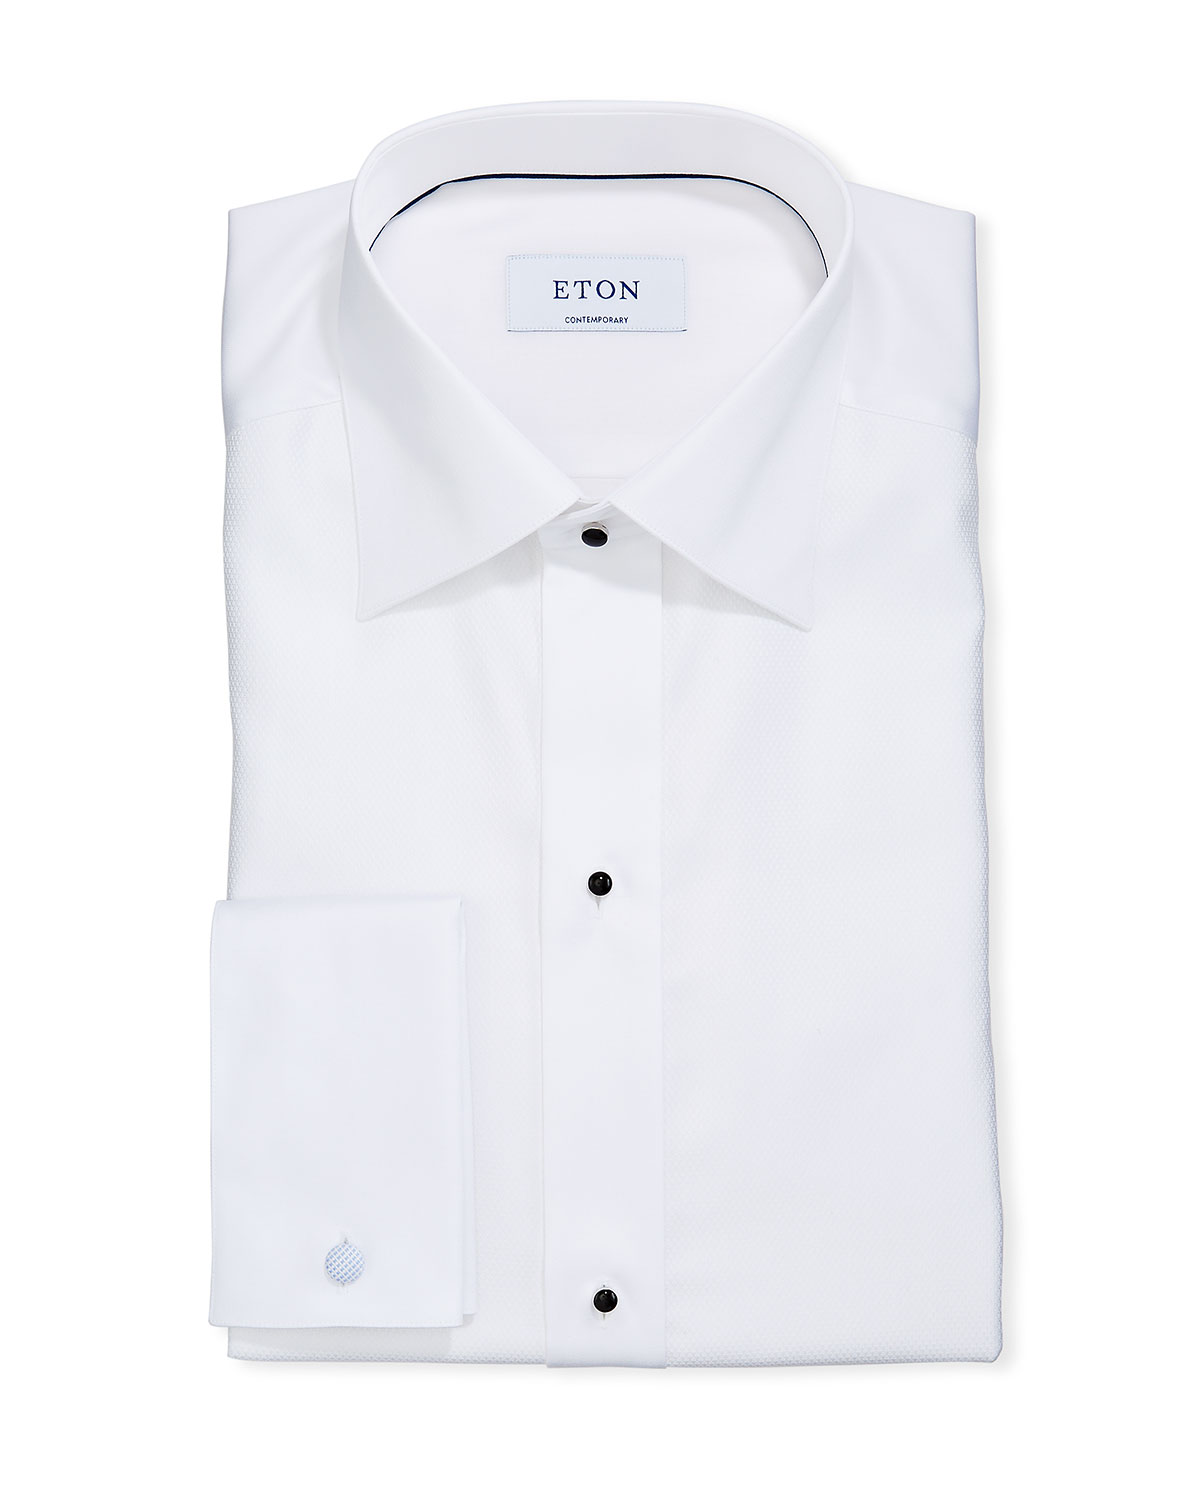 Eton Men's Formal Dobby Contemporary Dress Shirt